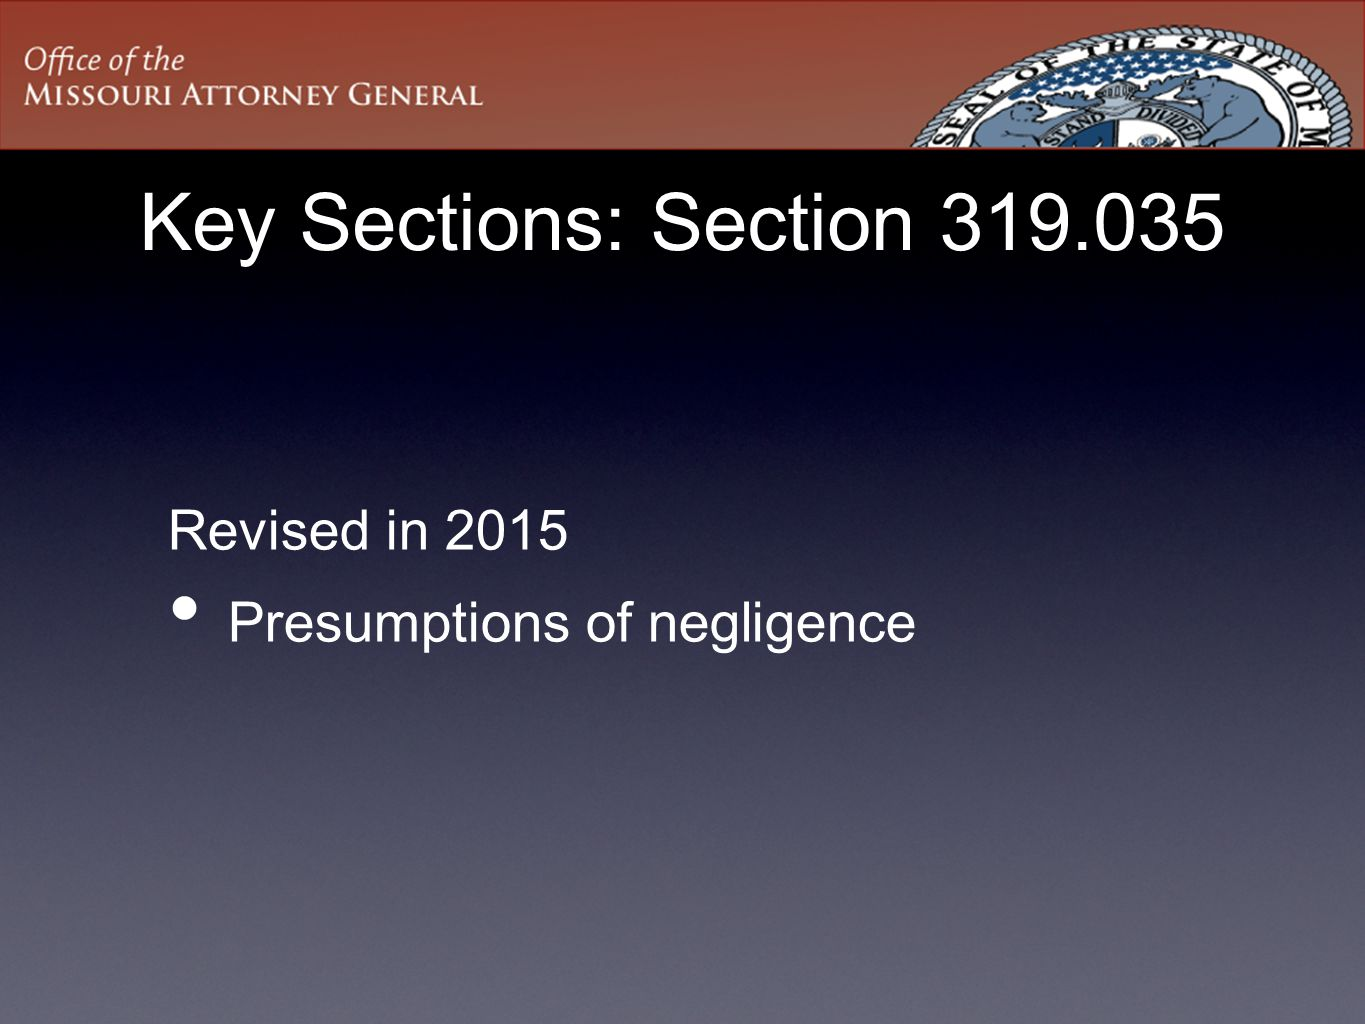 Key Sections: Section 319.035 Revised in 2015